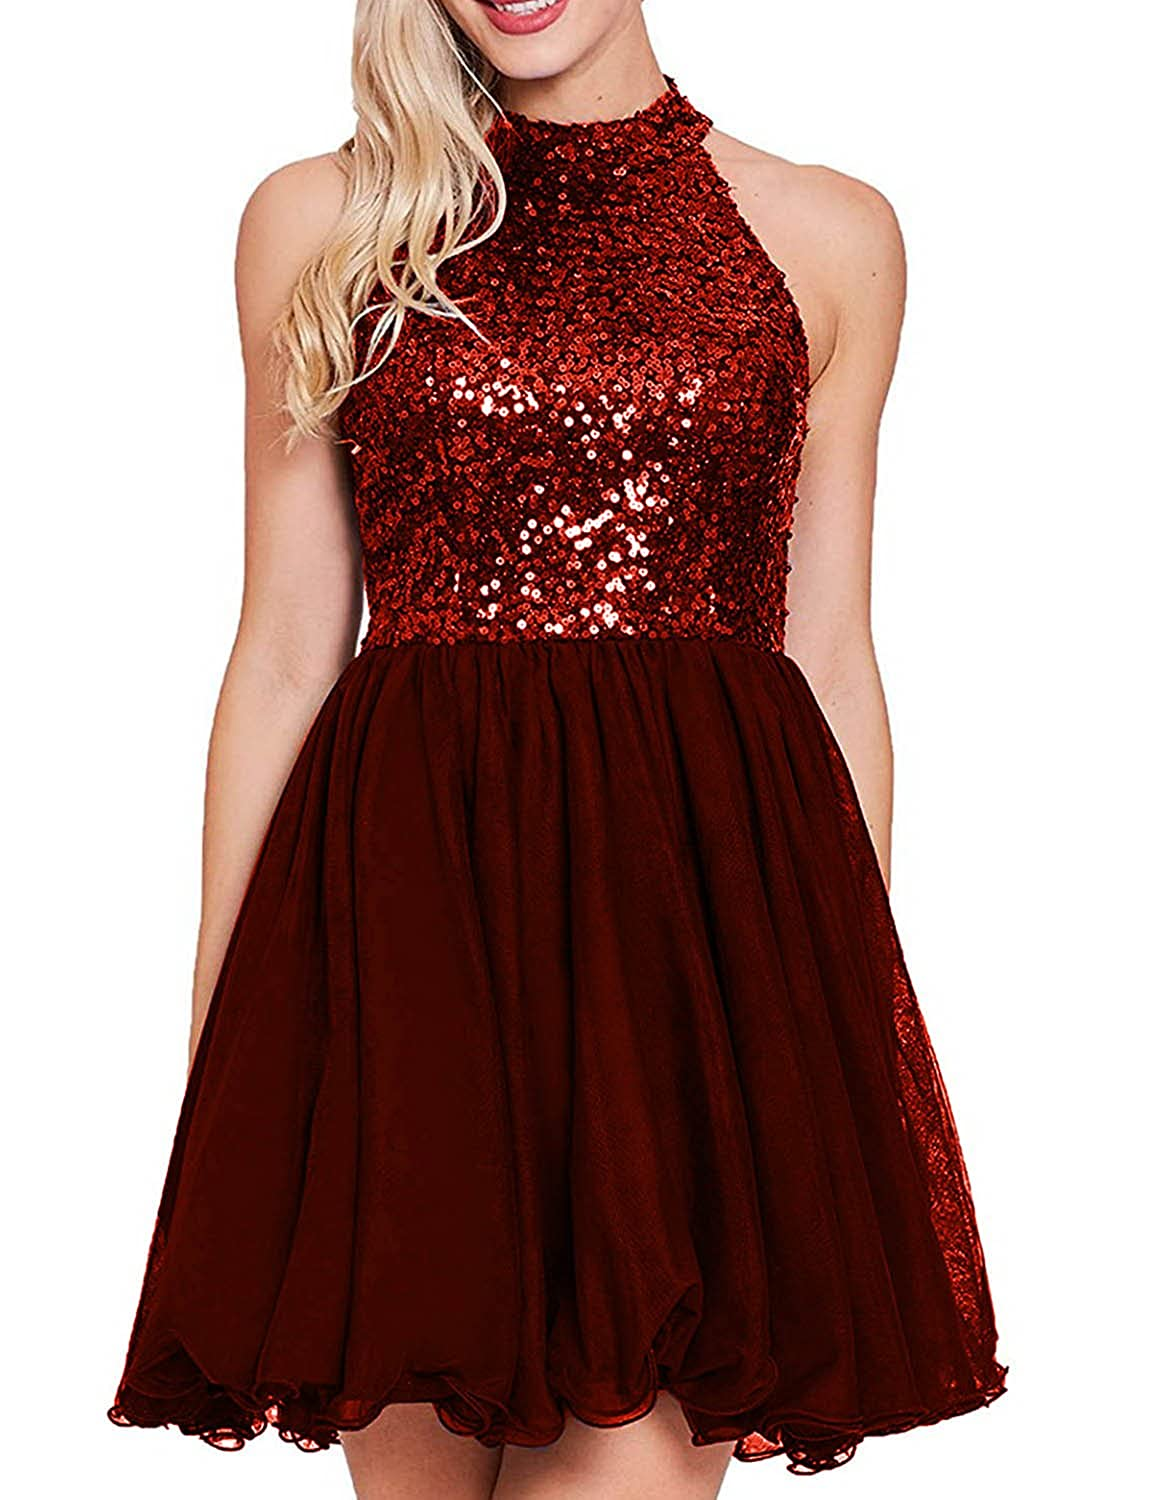 Burgundy YIRENWANSHA 2018 Sexy Halter Homecoming Dress Shiny Sequined Empire Waist Short Party Gown YW47